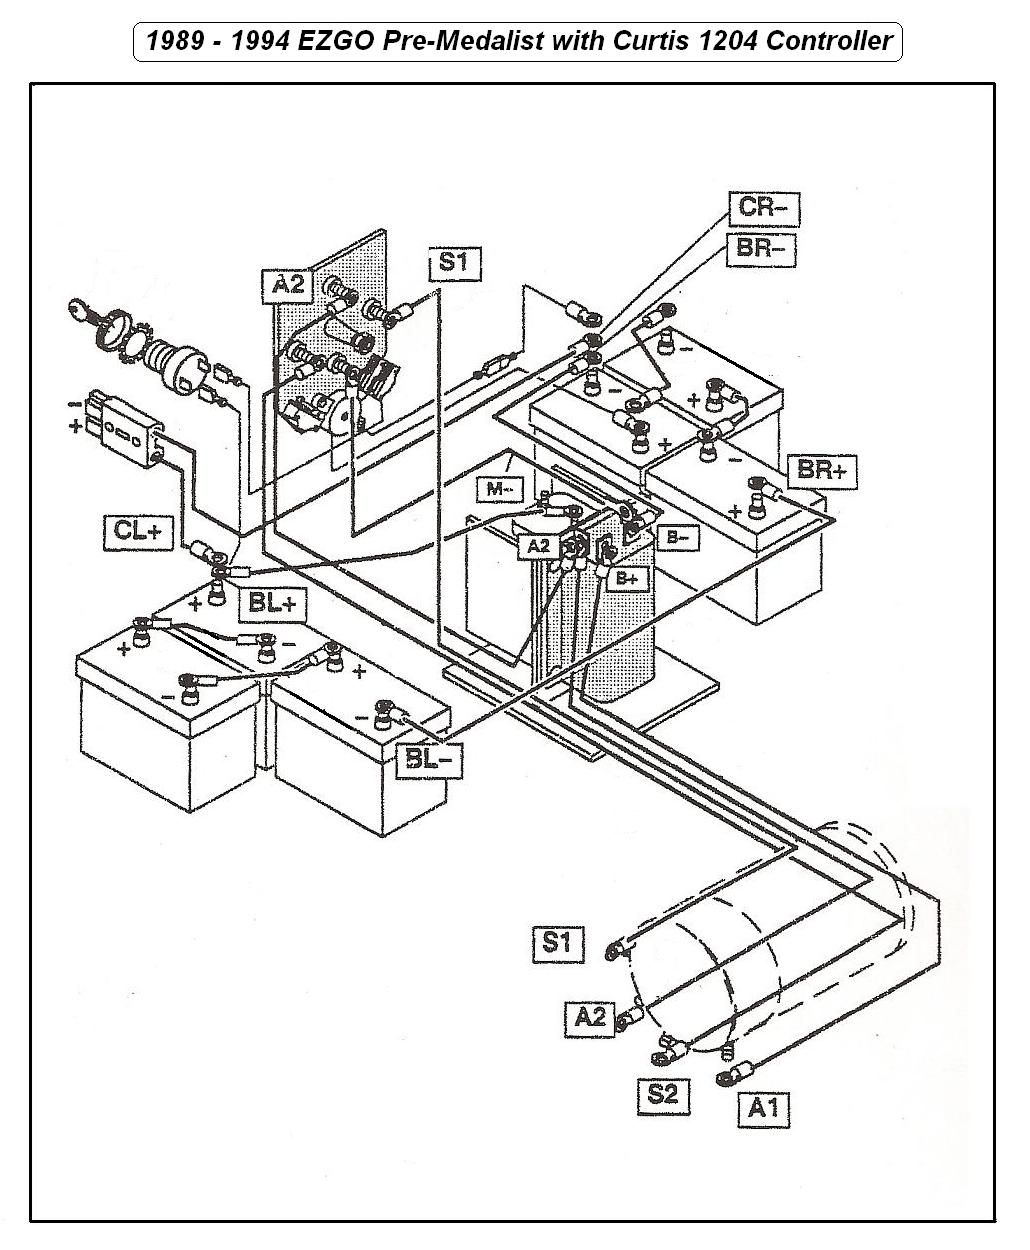 A89_94EZ_Wiring ezgo wiring diagram ez wiring \u2022 wiring diagrams j squared co 48 volt star golf cart wiring diagram at webbmarketing.co